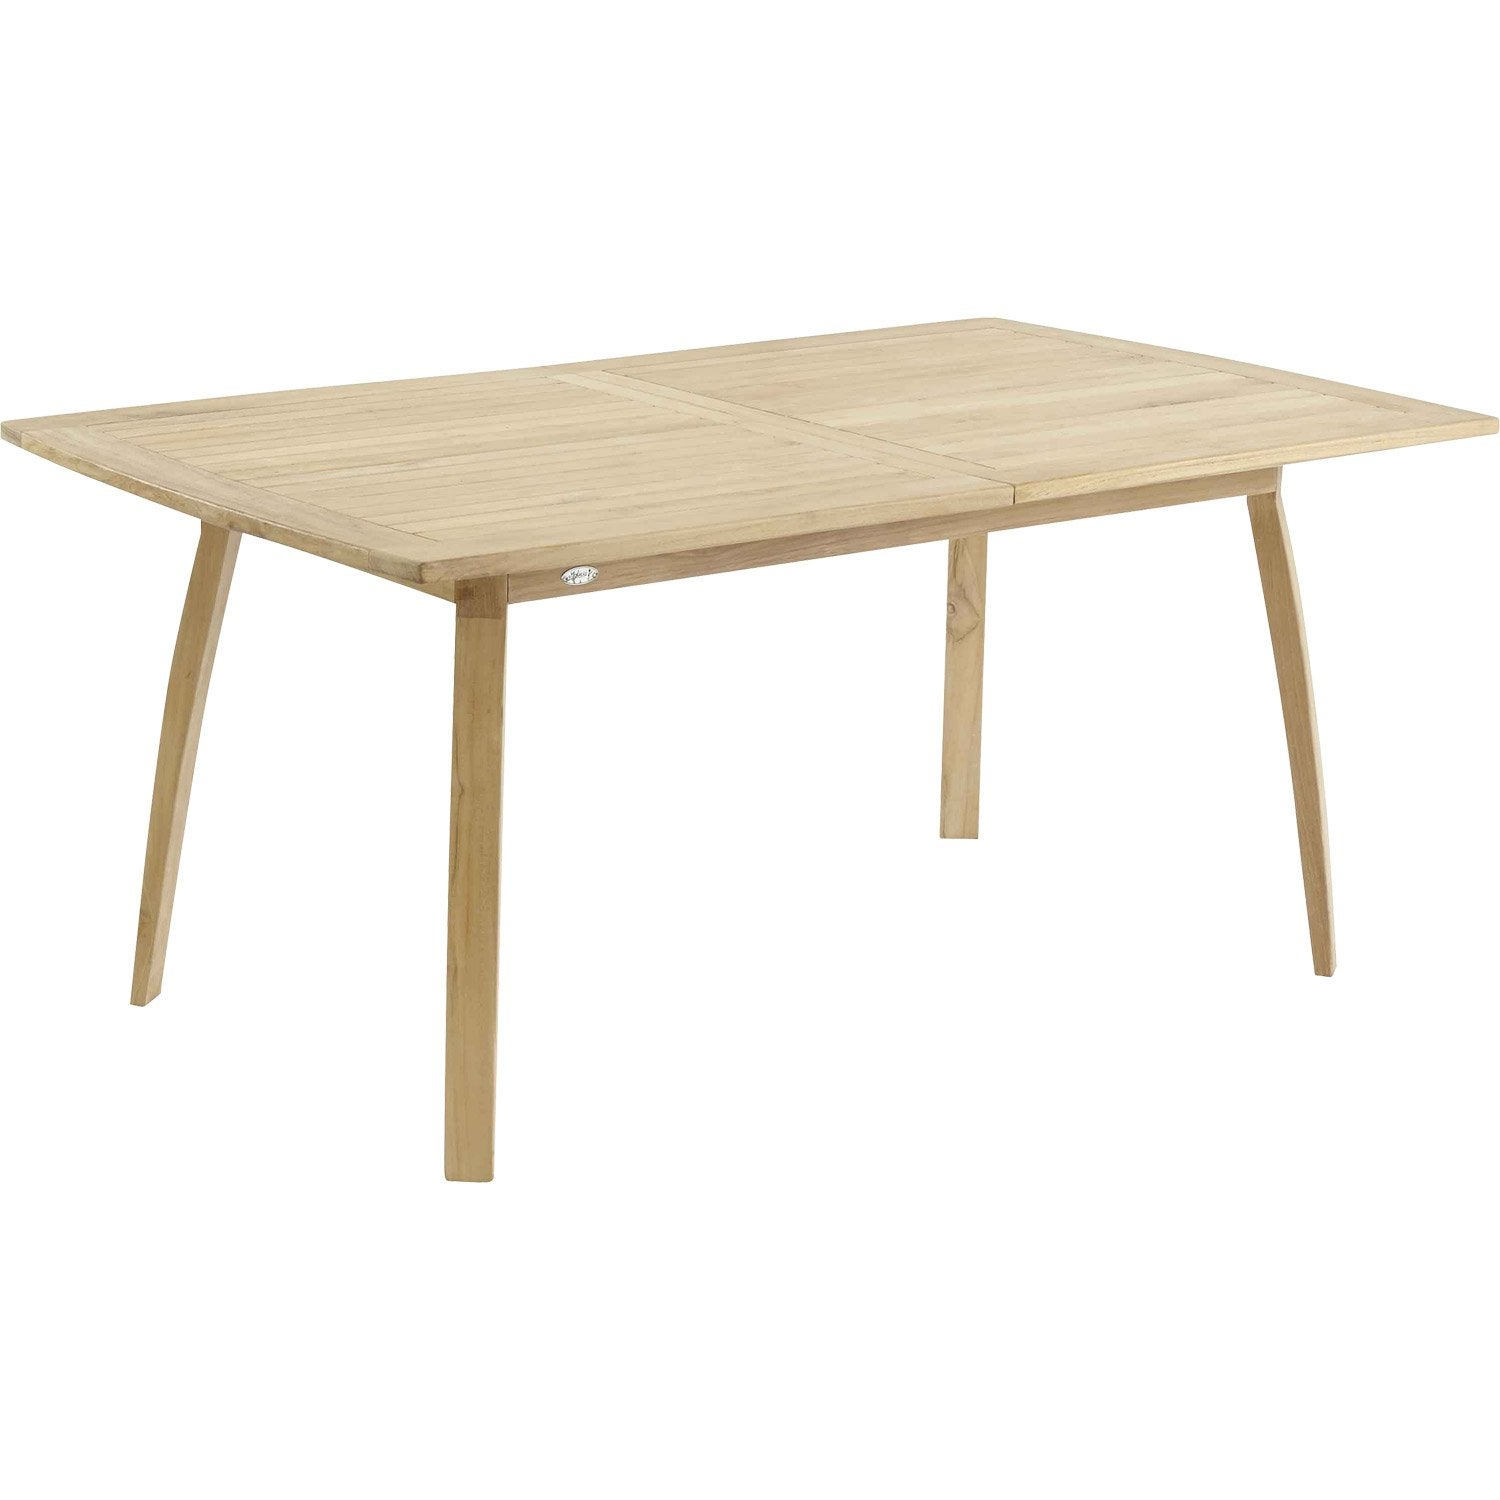 Table basse ovale leroy merlin - Table basse ovale bois ...